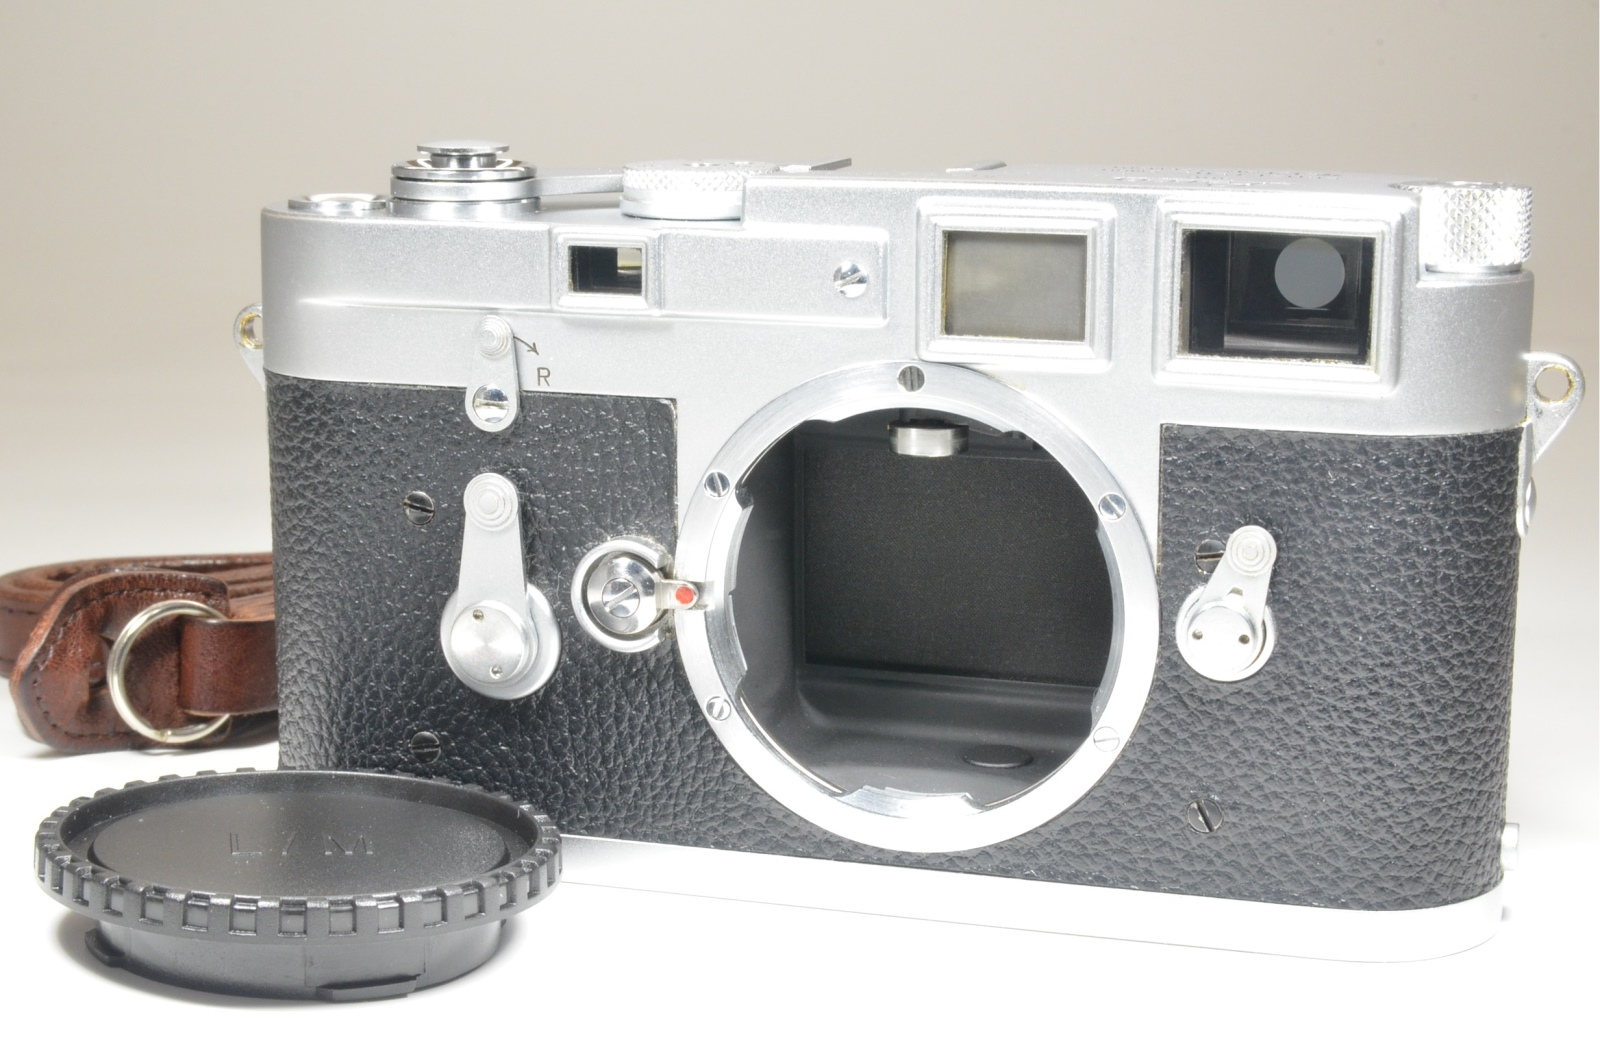 leica m3 double stroke s/n 865429 year 1957 with leather strap